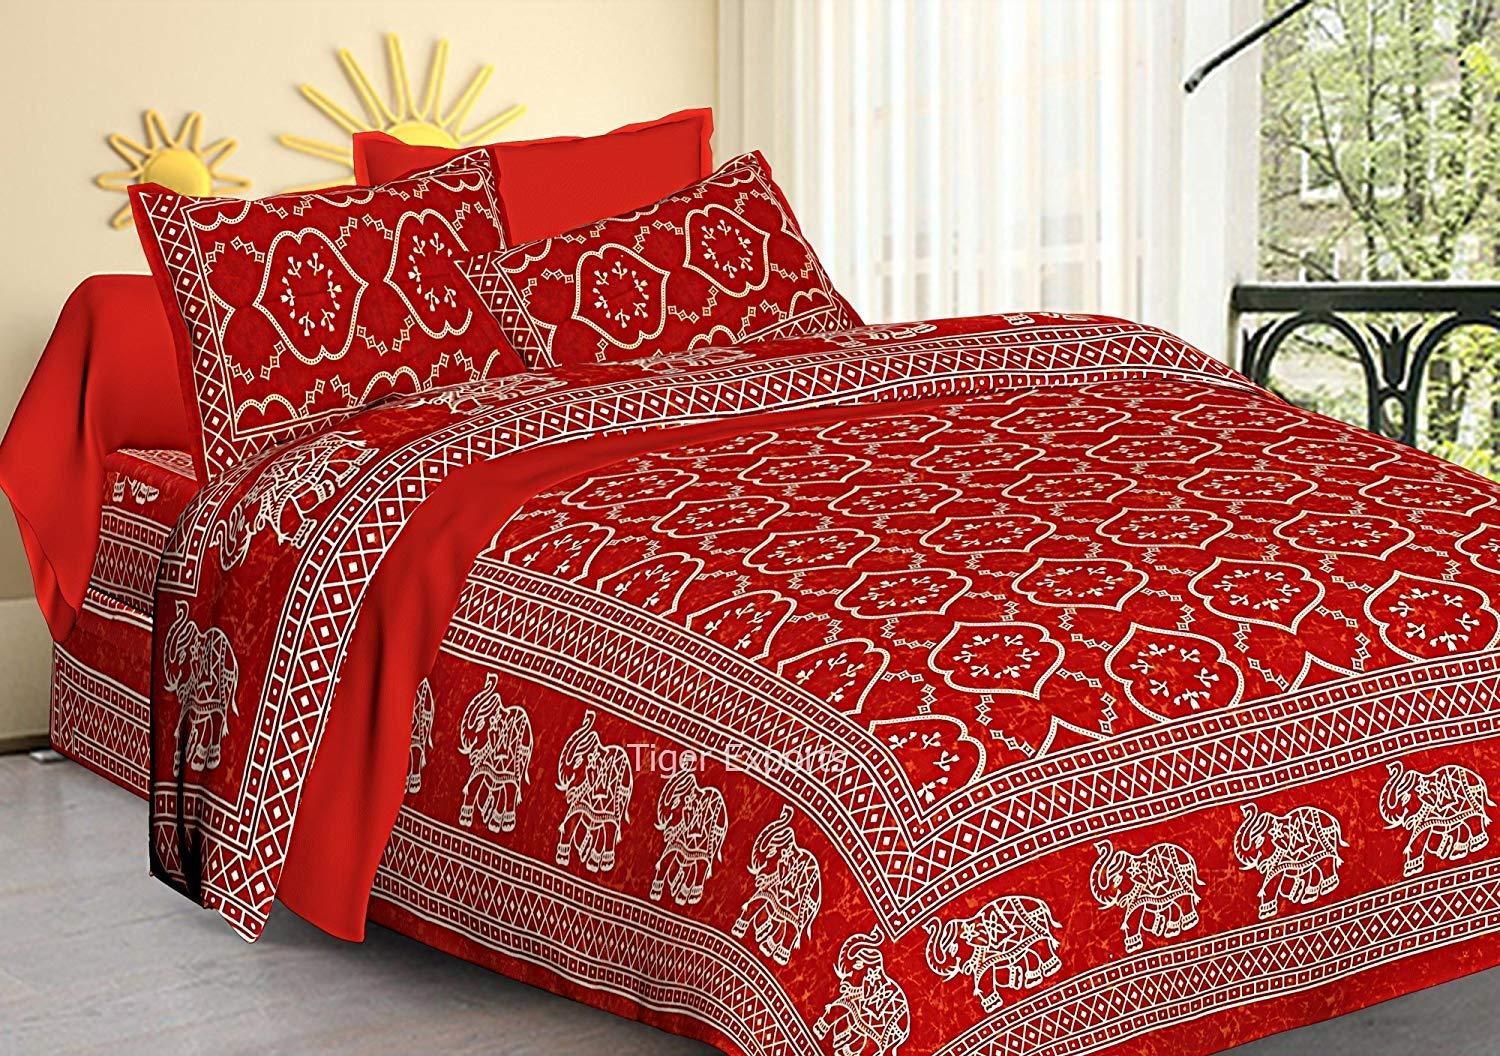 Jaipur Cotton Rajasthani Jaipuri Prints Queen Size Bed Sheets with Pillow Covers